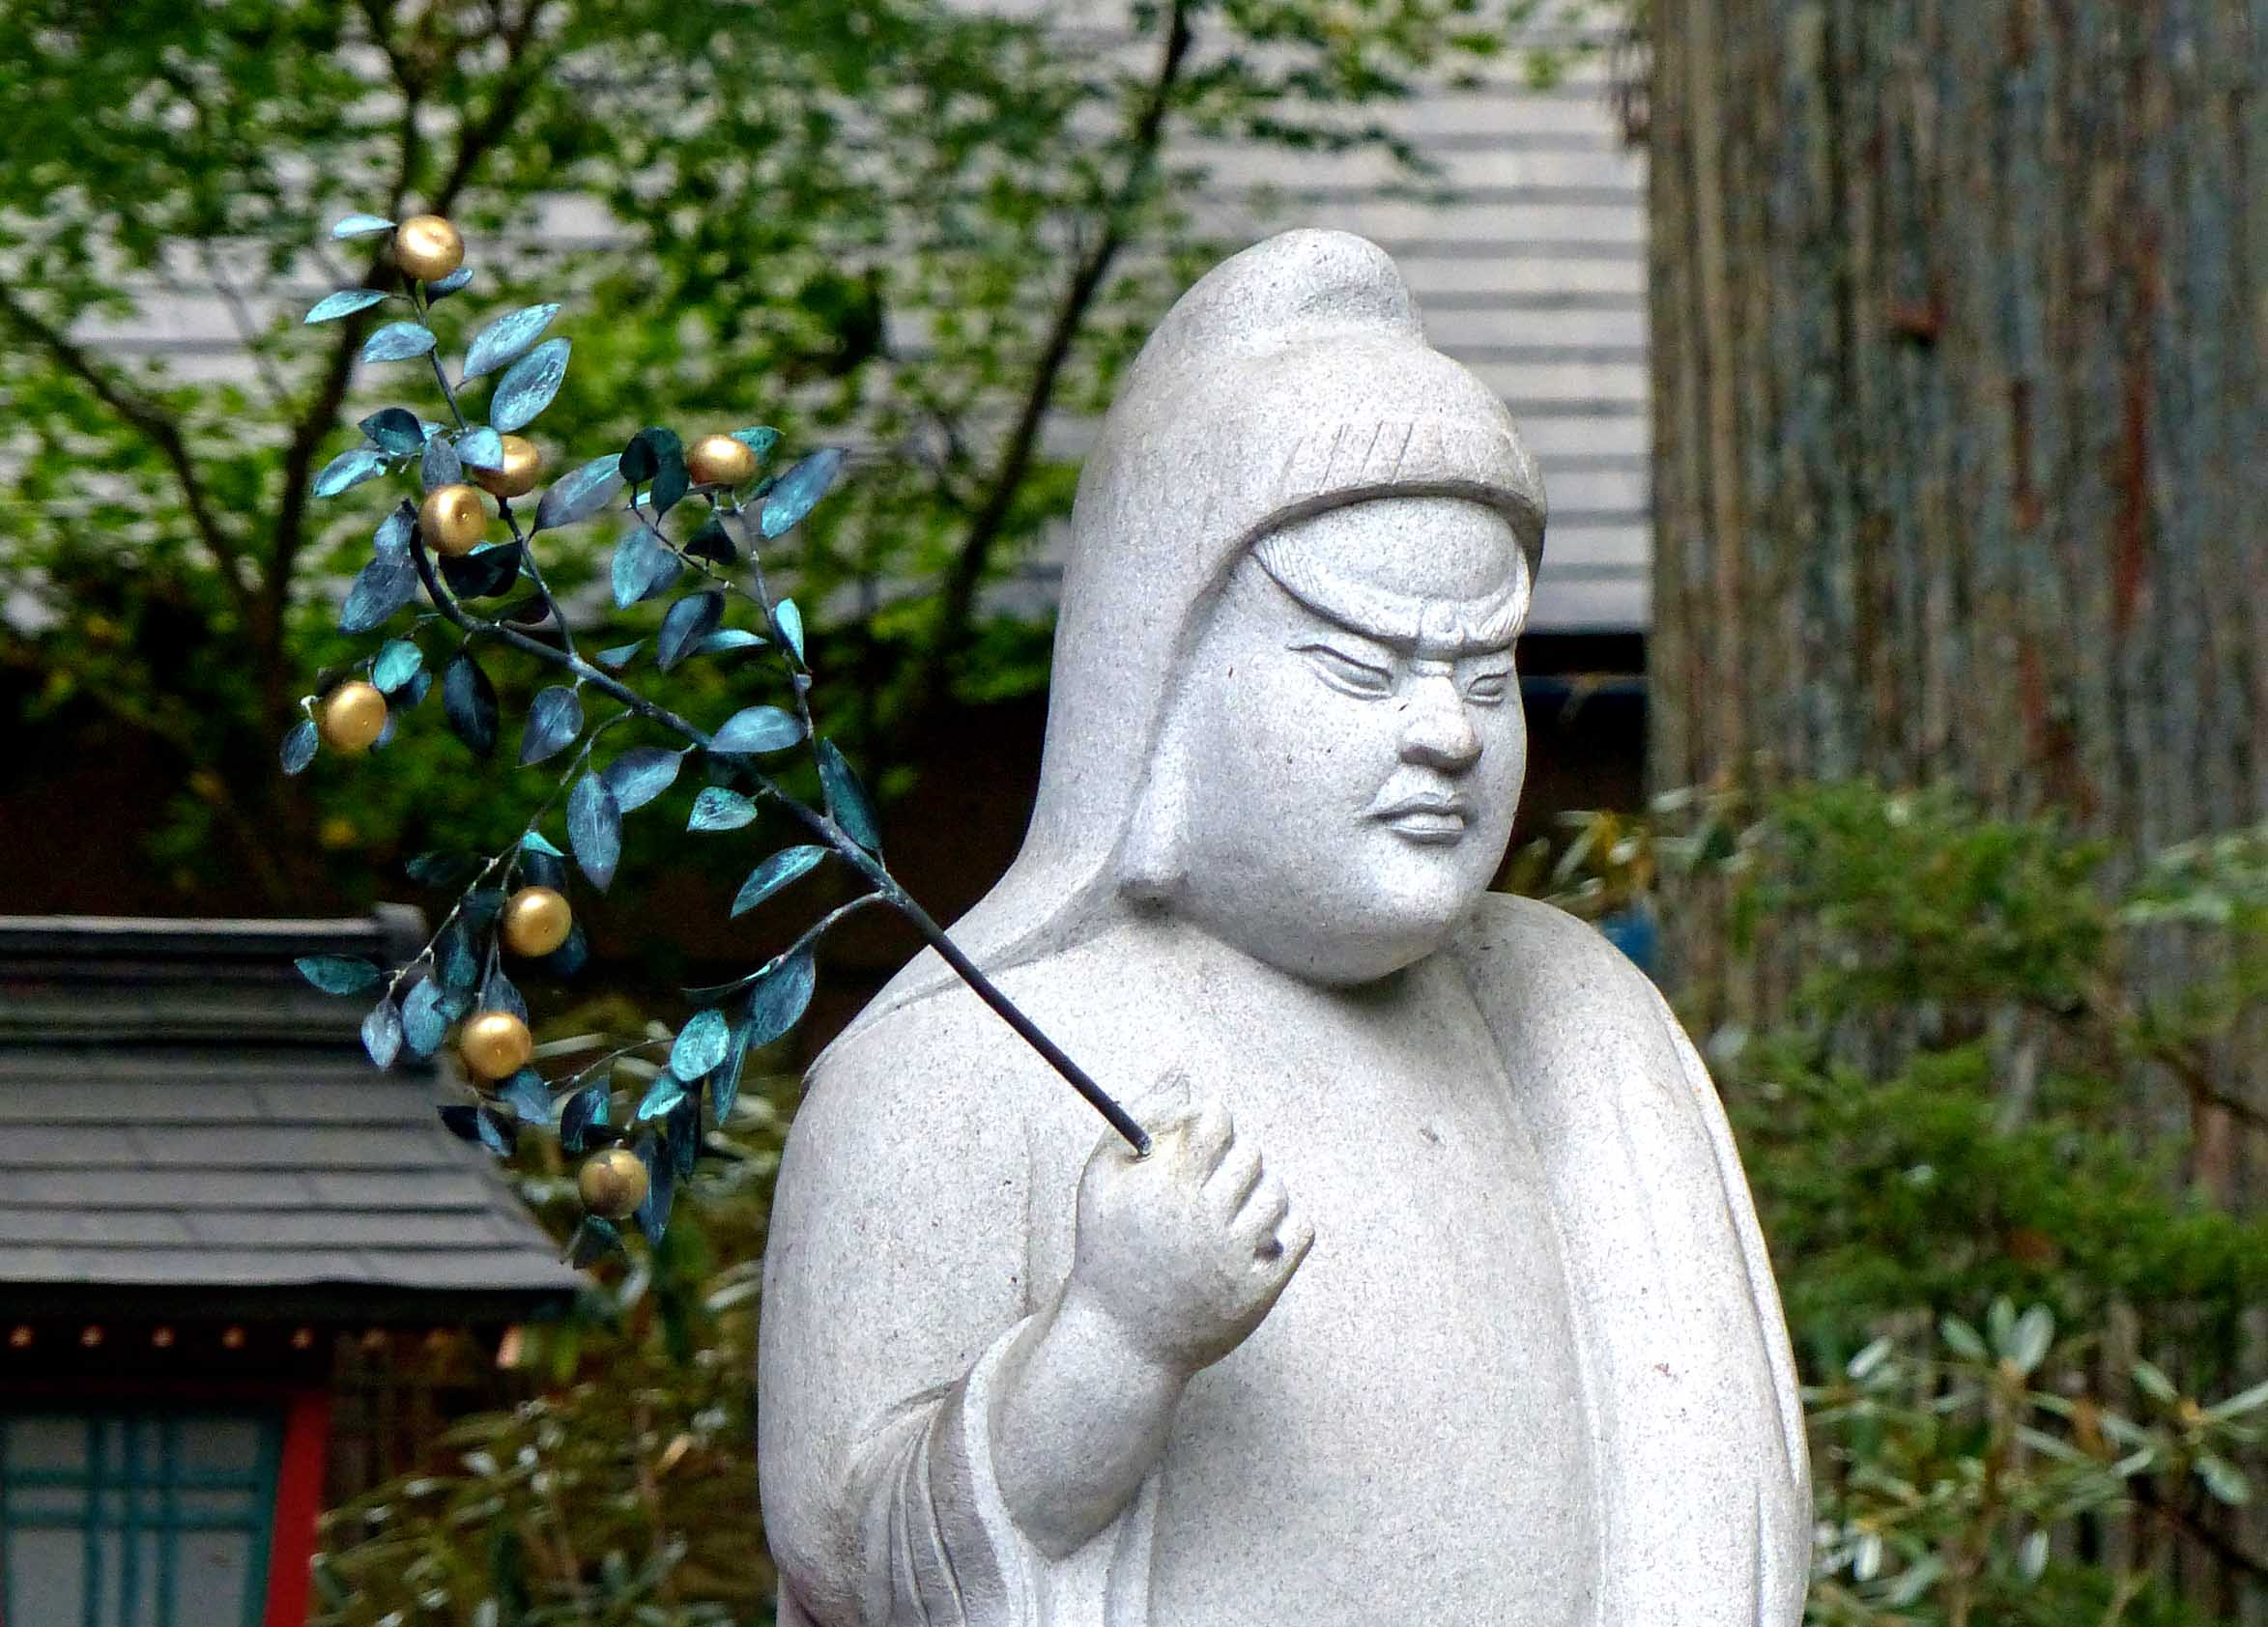 Simple grey statue of a buddha